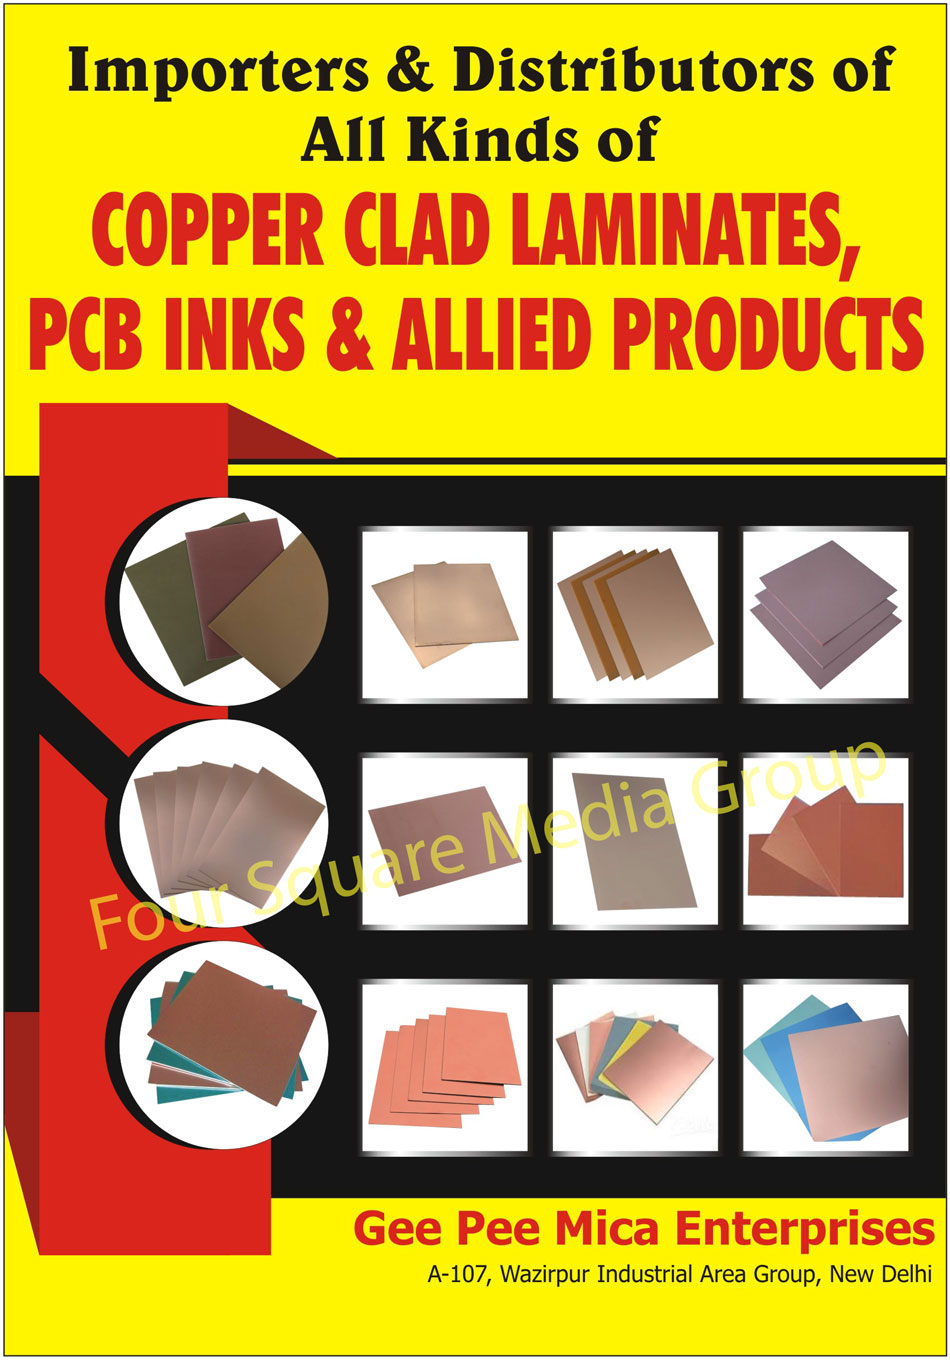 Copper Clad Laminates, Metal Core Laminates, Led White Inks, Unclad Industrial Laminates, Nichrome Wires, Technical Ceramics, Terminal Blocks Ceramics, Terminal Blocks Bakelite, PCB Inks, Allied Products